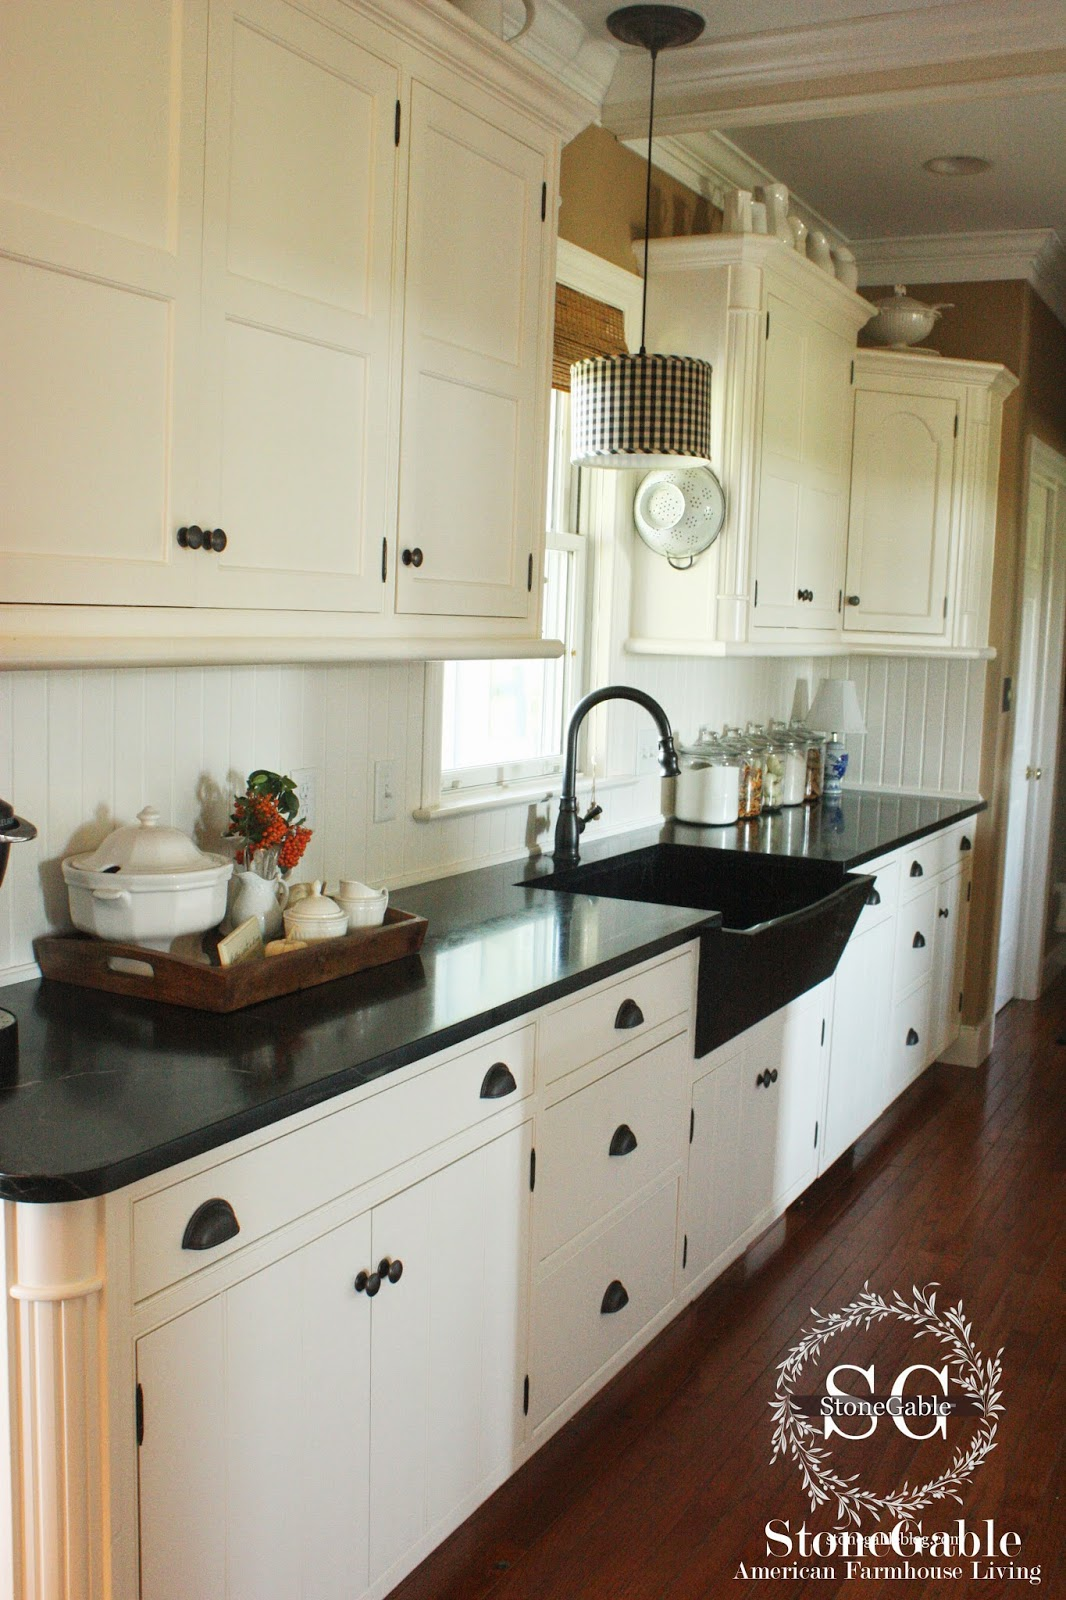 Modern Farmhouse Kitchen Cabinets 10 elements of a farmhouse kitchen - stonegable